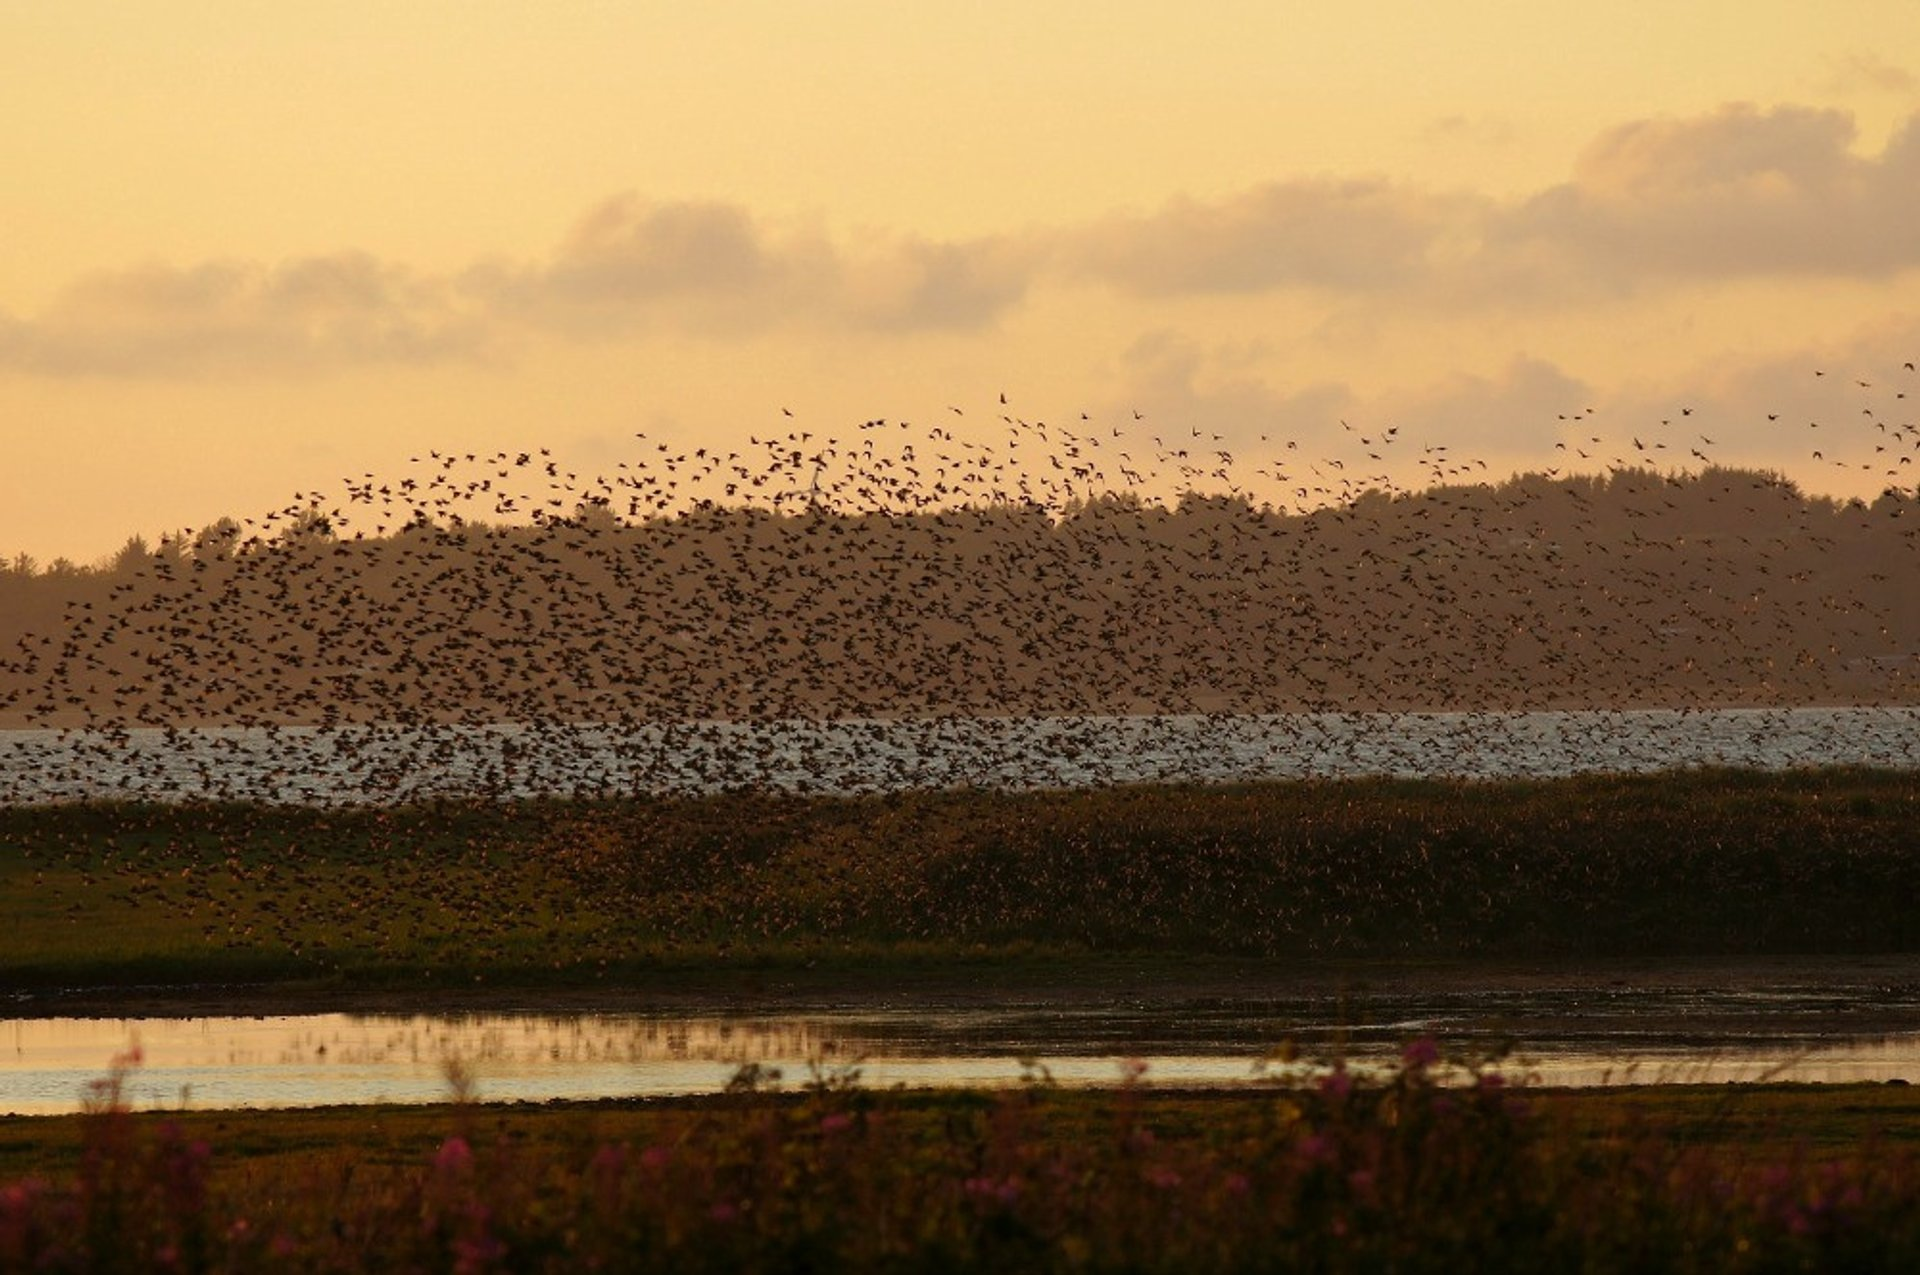 Black Sun or Starling Murmuration in Denmark 2019 - Best Time